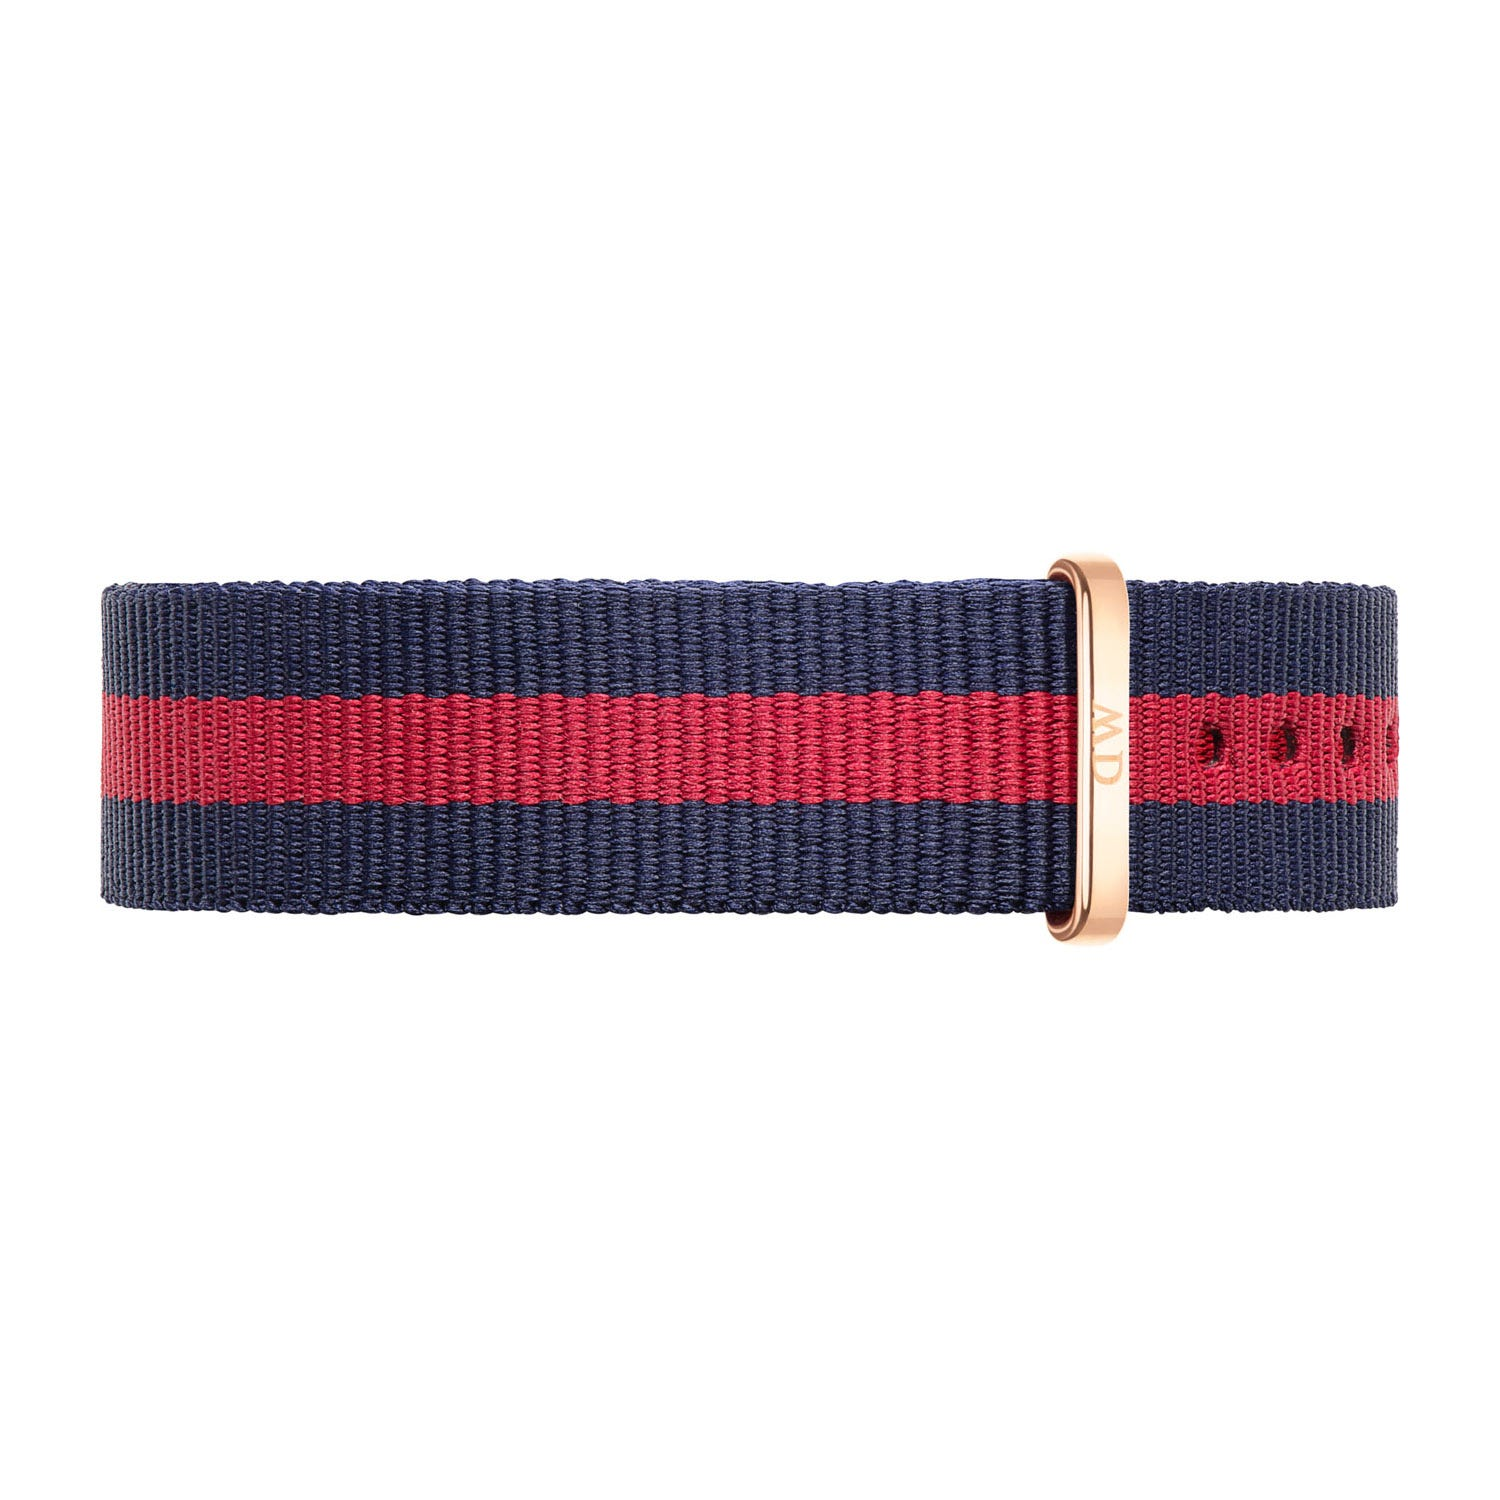 Daniel Wellington Oxford 18mm Red and Navy NATO Strap